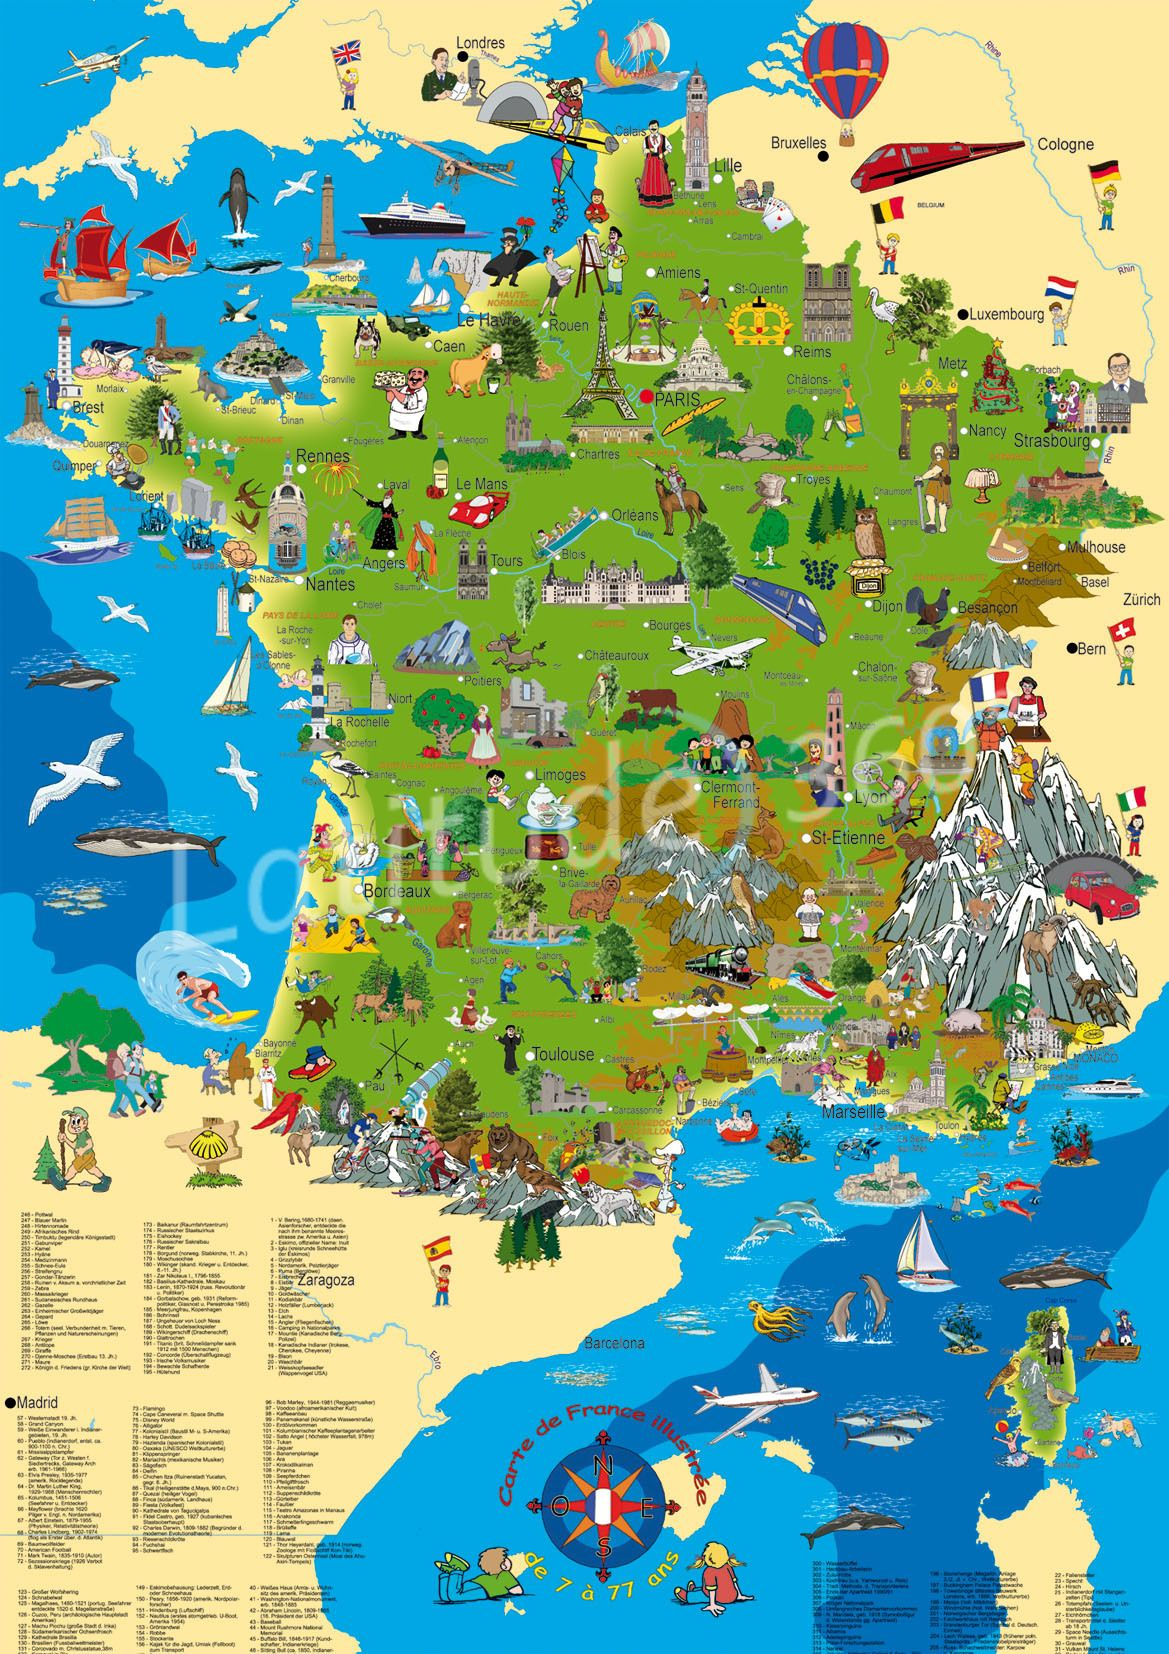 Très géo - France-carte-de-France-illustrée-la-France-dessinée-France  SA72